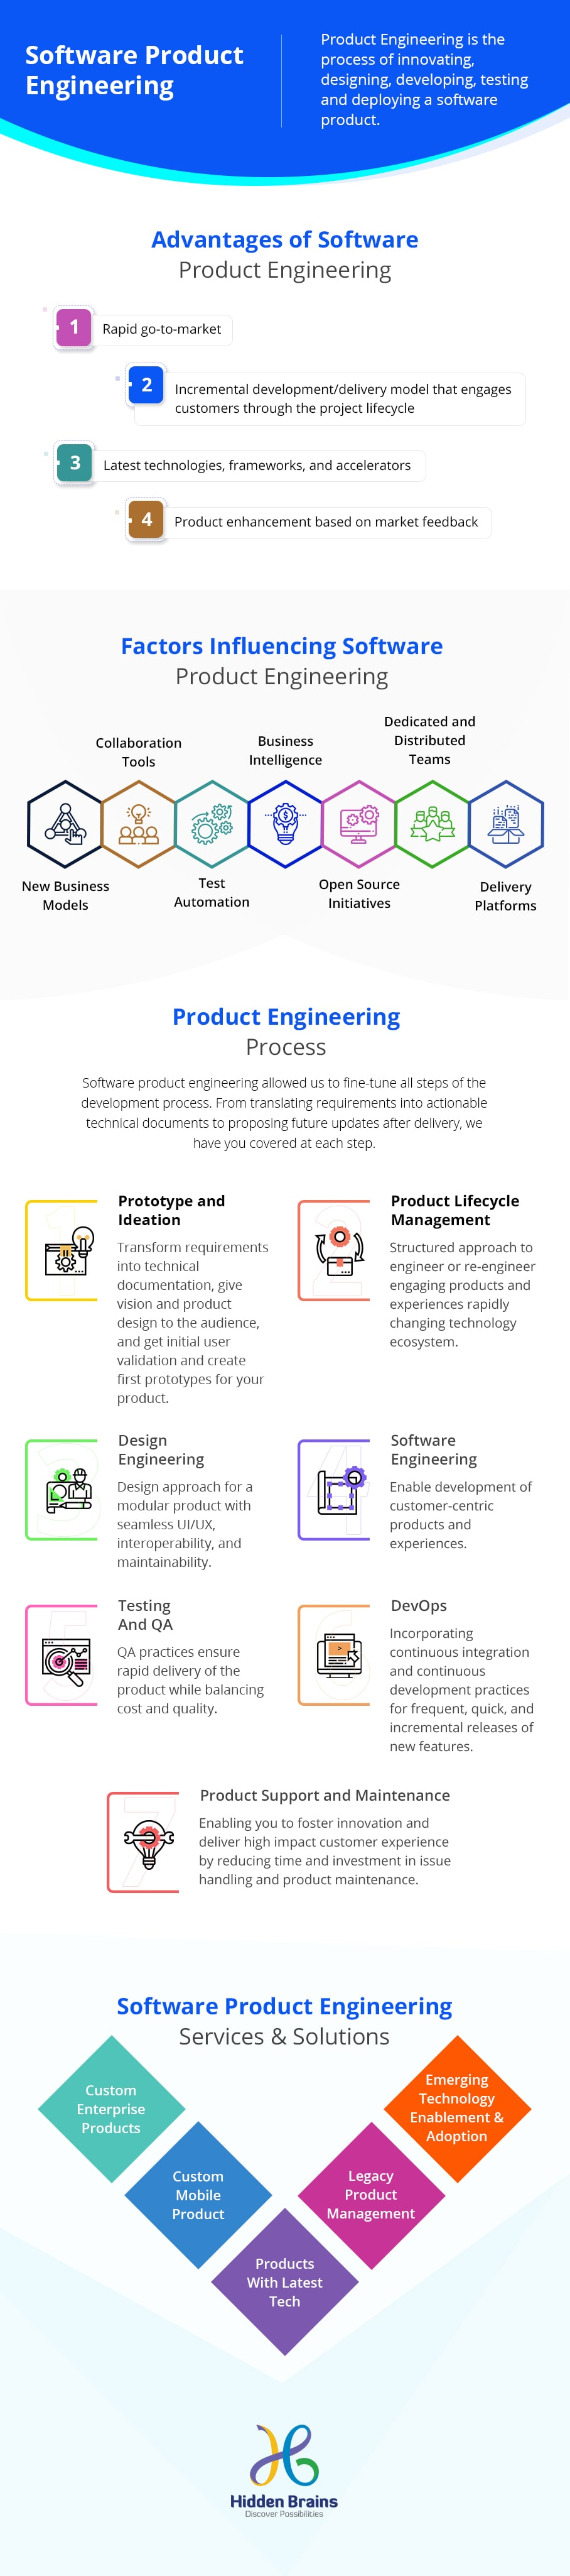 infographic software product engineering for business growth